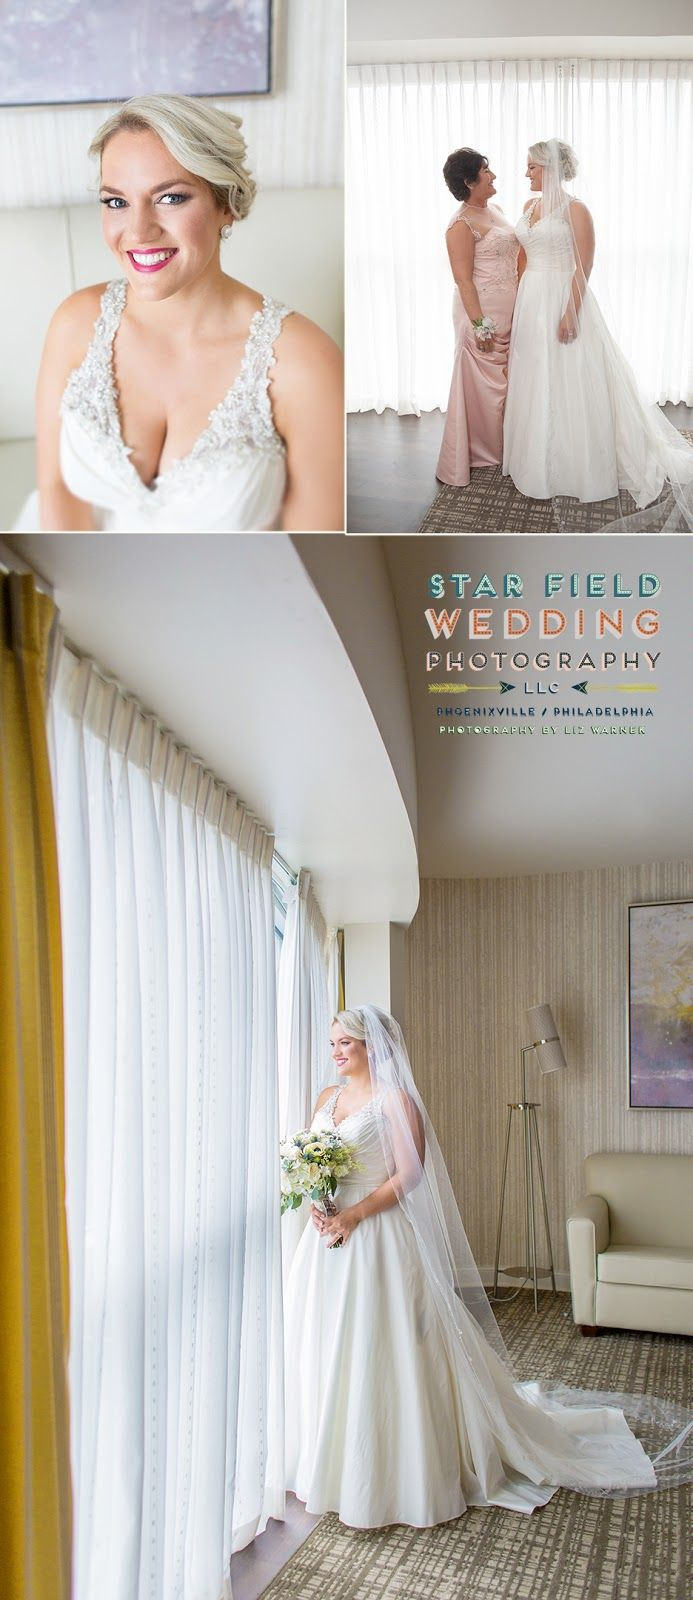 Philadelphia Wedding Photographer Blog - Liz Warnek Photography - Phoenixville Wedding Photographer : Caitlin and Pat's Wedding - Springfield Country Club and St. Coleman's church Ardmore #SpringfieldCountryClub  #SpringfieldCountryClub Wedding #MarriottSpringfieldCountryClub  #MarriottSpringfieldCountryClubBridalSuite